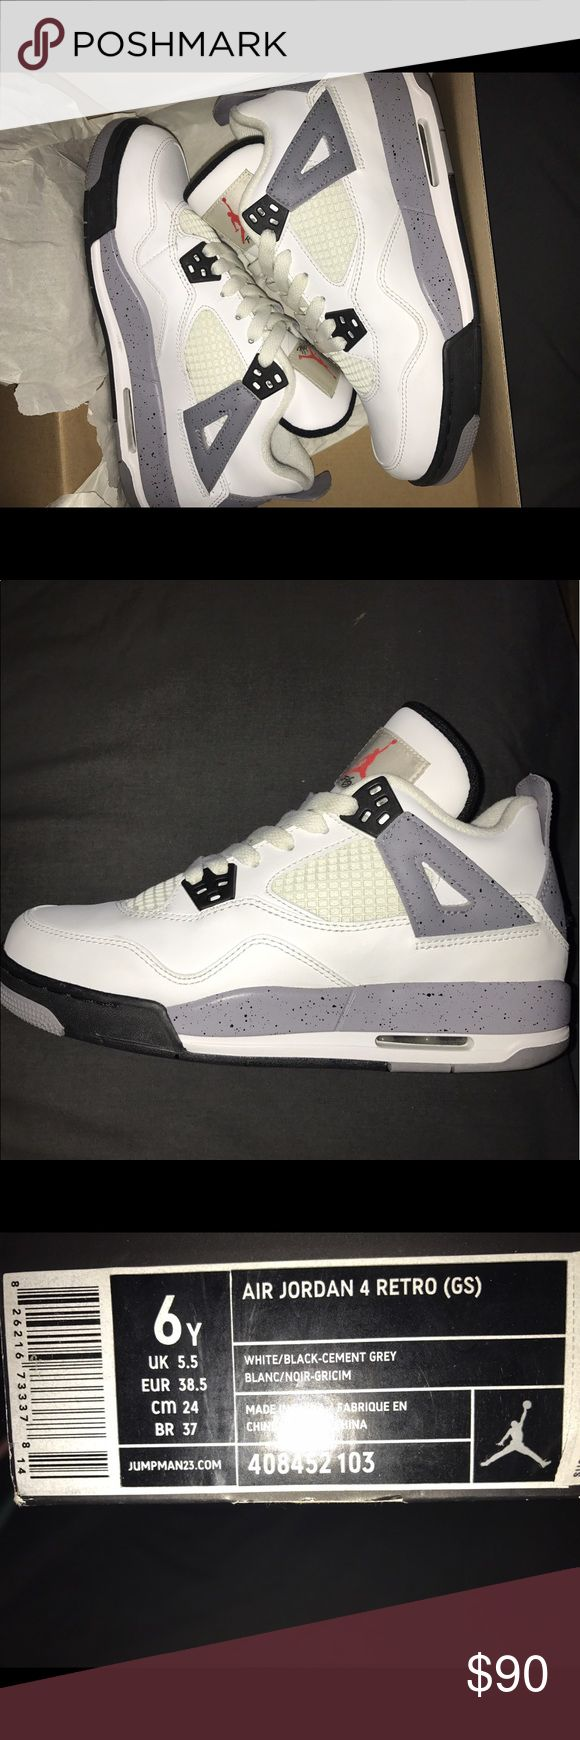 Jordan Retros 4's 2012 (Kids size 6) I am selling these Air Jordan Retro 4's 2012 that are a size 6 in kids. They have only been worn twice. They are very clean with no marks other than the few that is on the bottom Jordan Shoes Sneakers